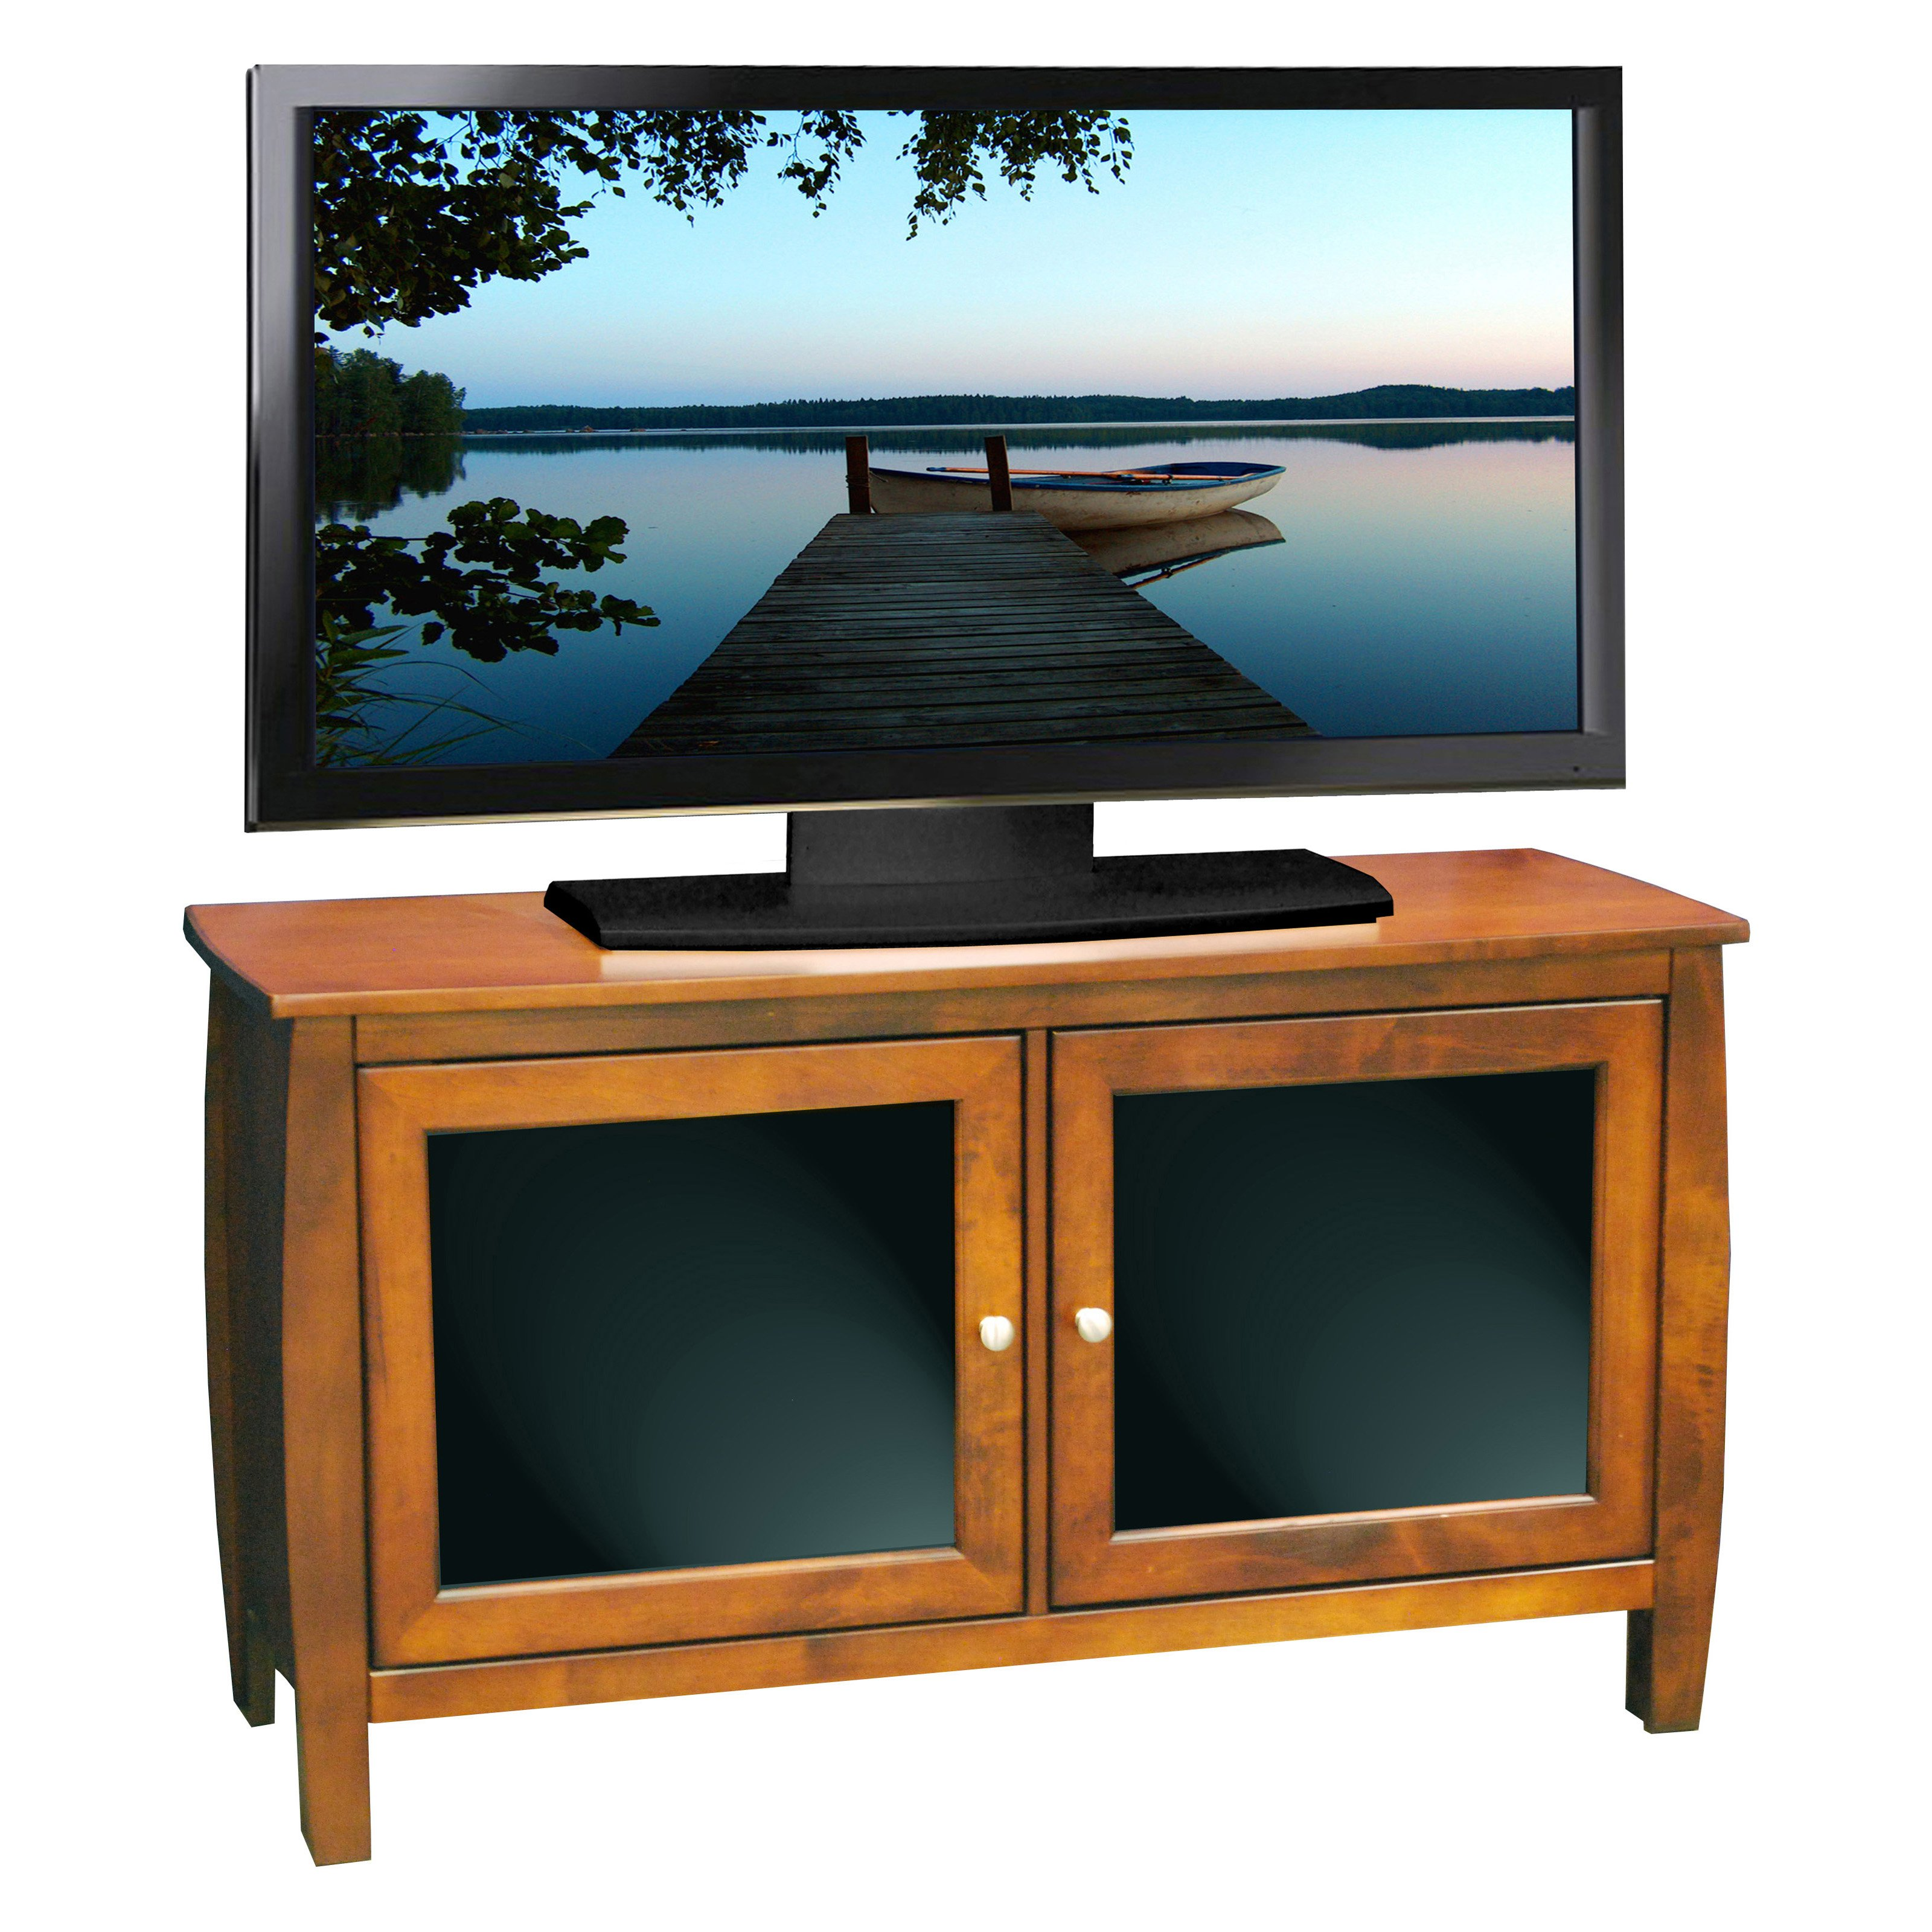 Legends Curve 45 in. TV Console - Spiced Rum